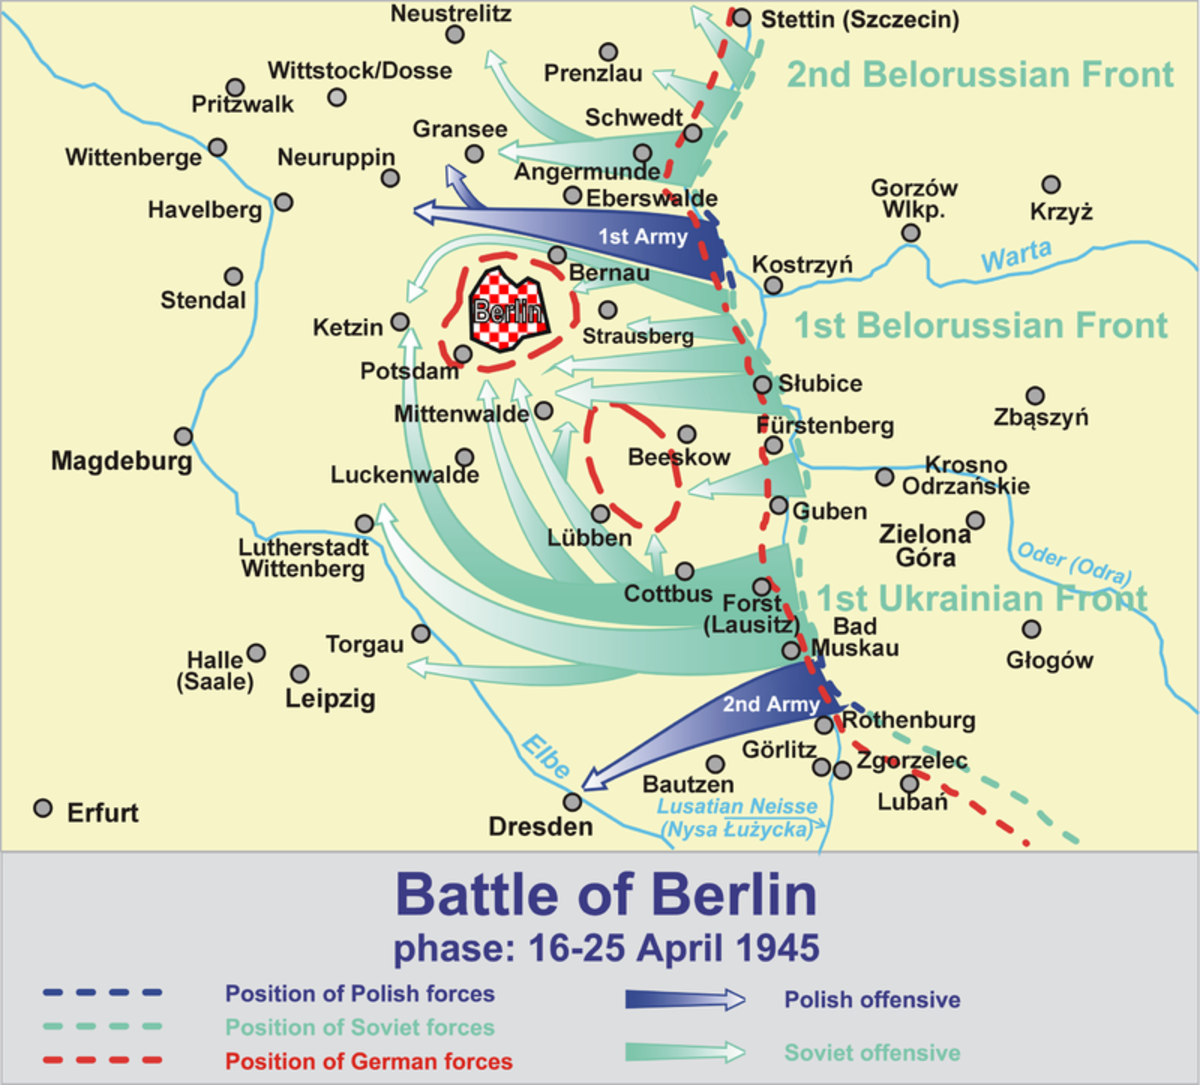 The Red Army surrounds Berlin April 1945